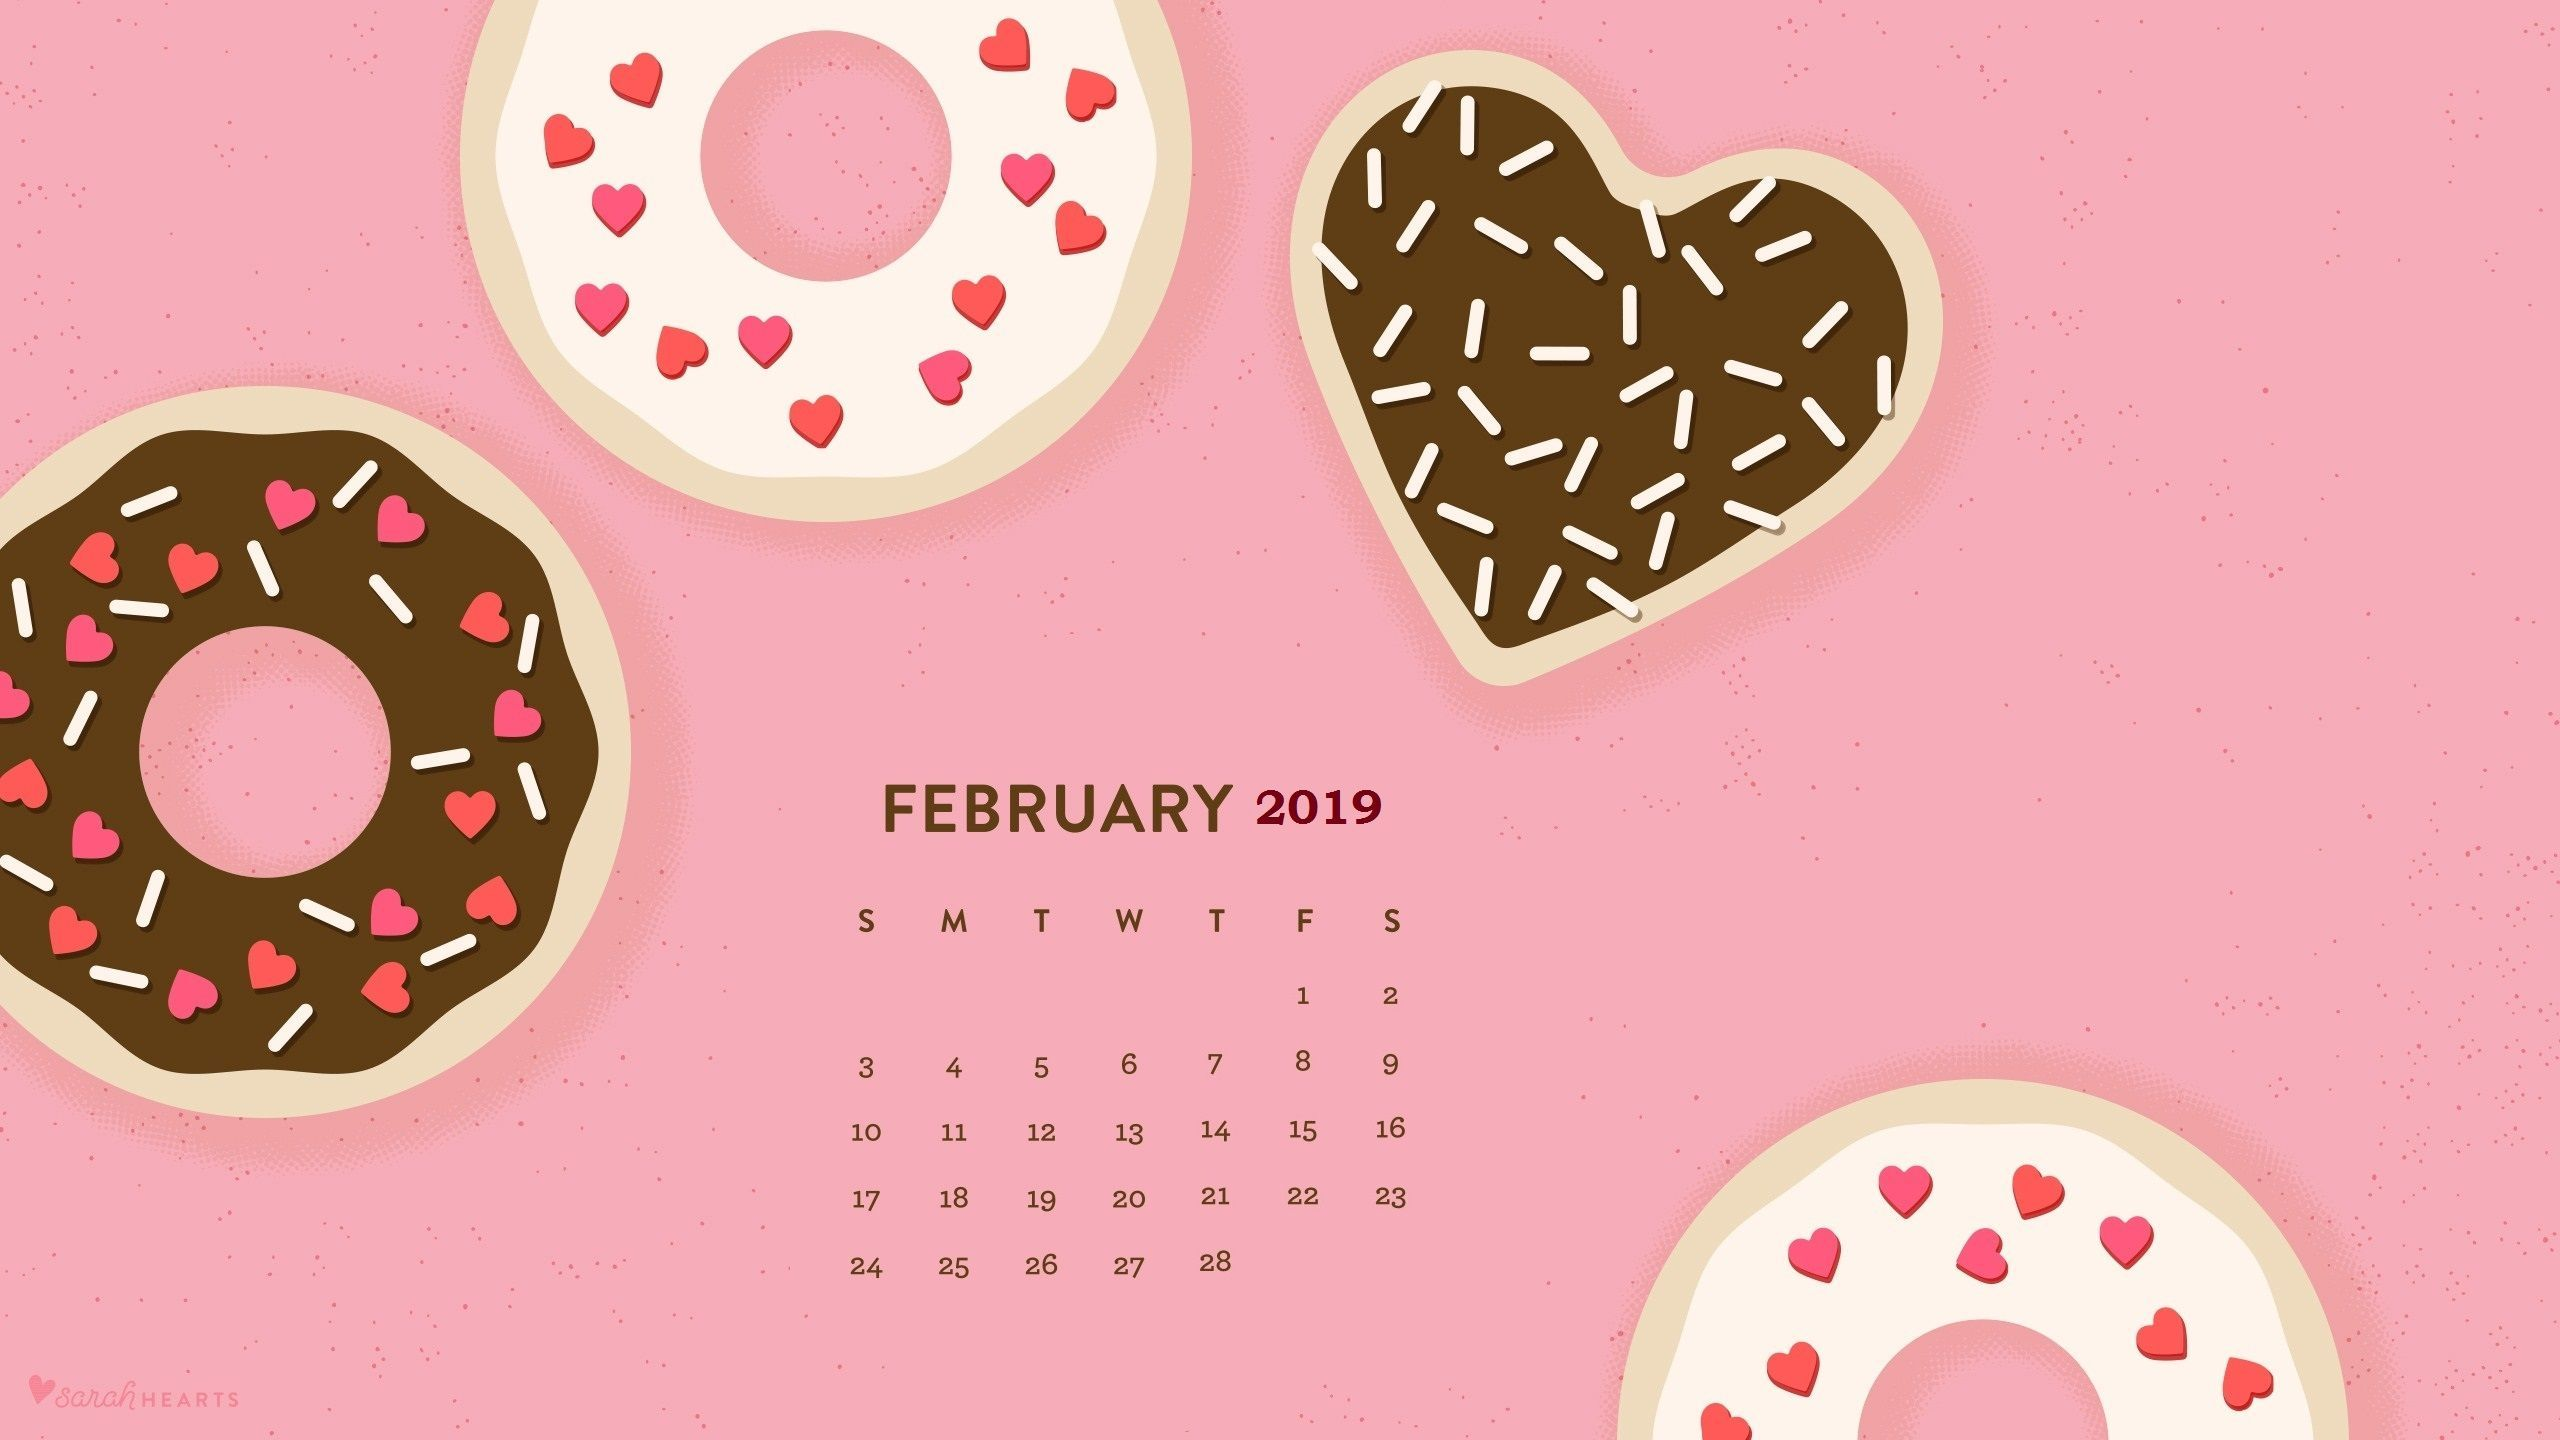 February 2020 Desktop Calendar Wallpaper (With images